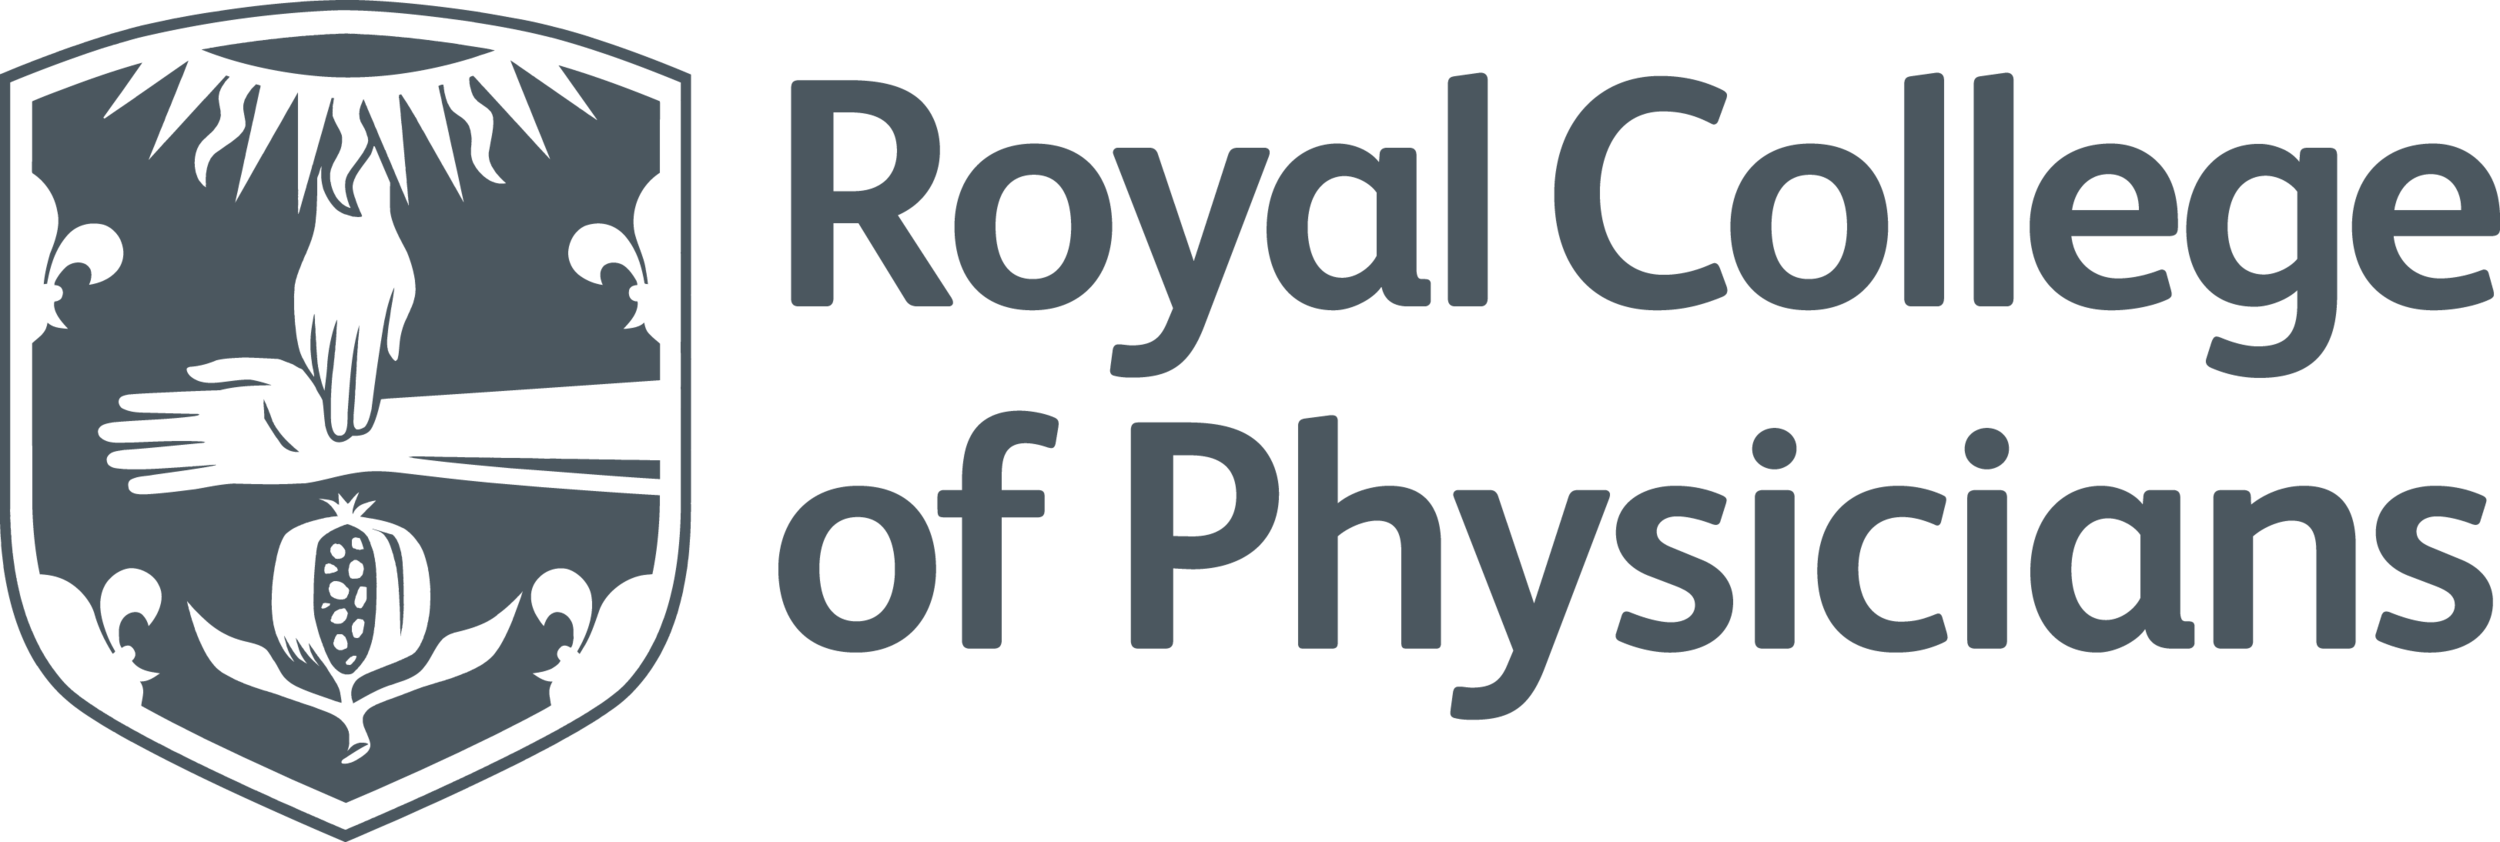 royal college physicians.png